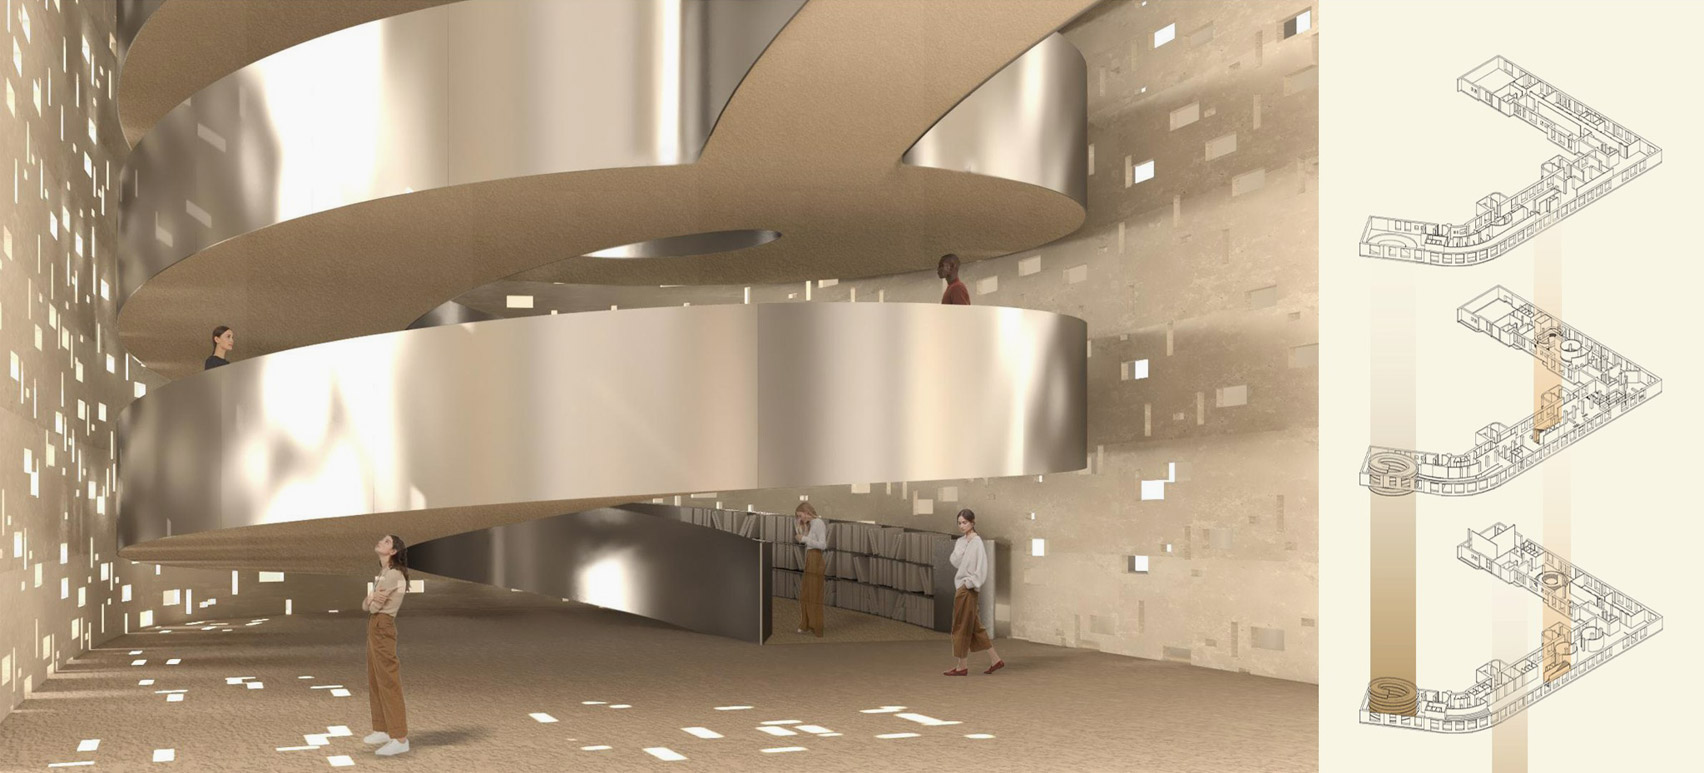 DIA Palestinian art and culture centre by Zeina Yaghmour